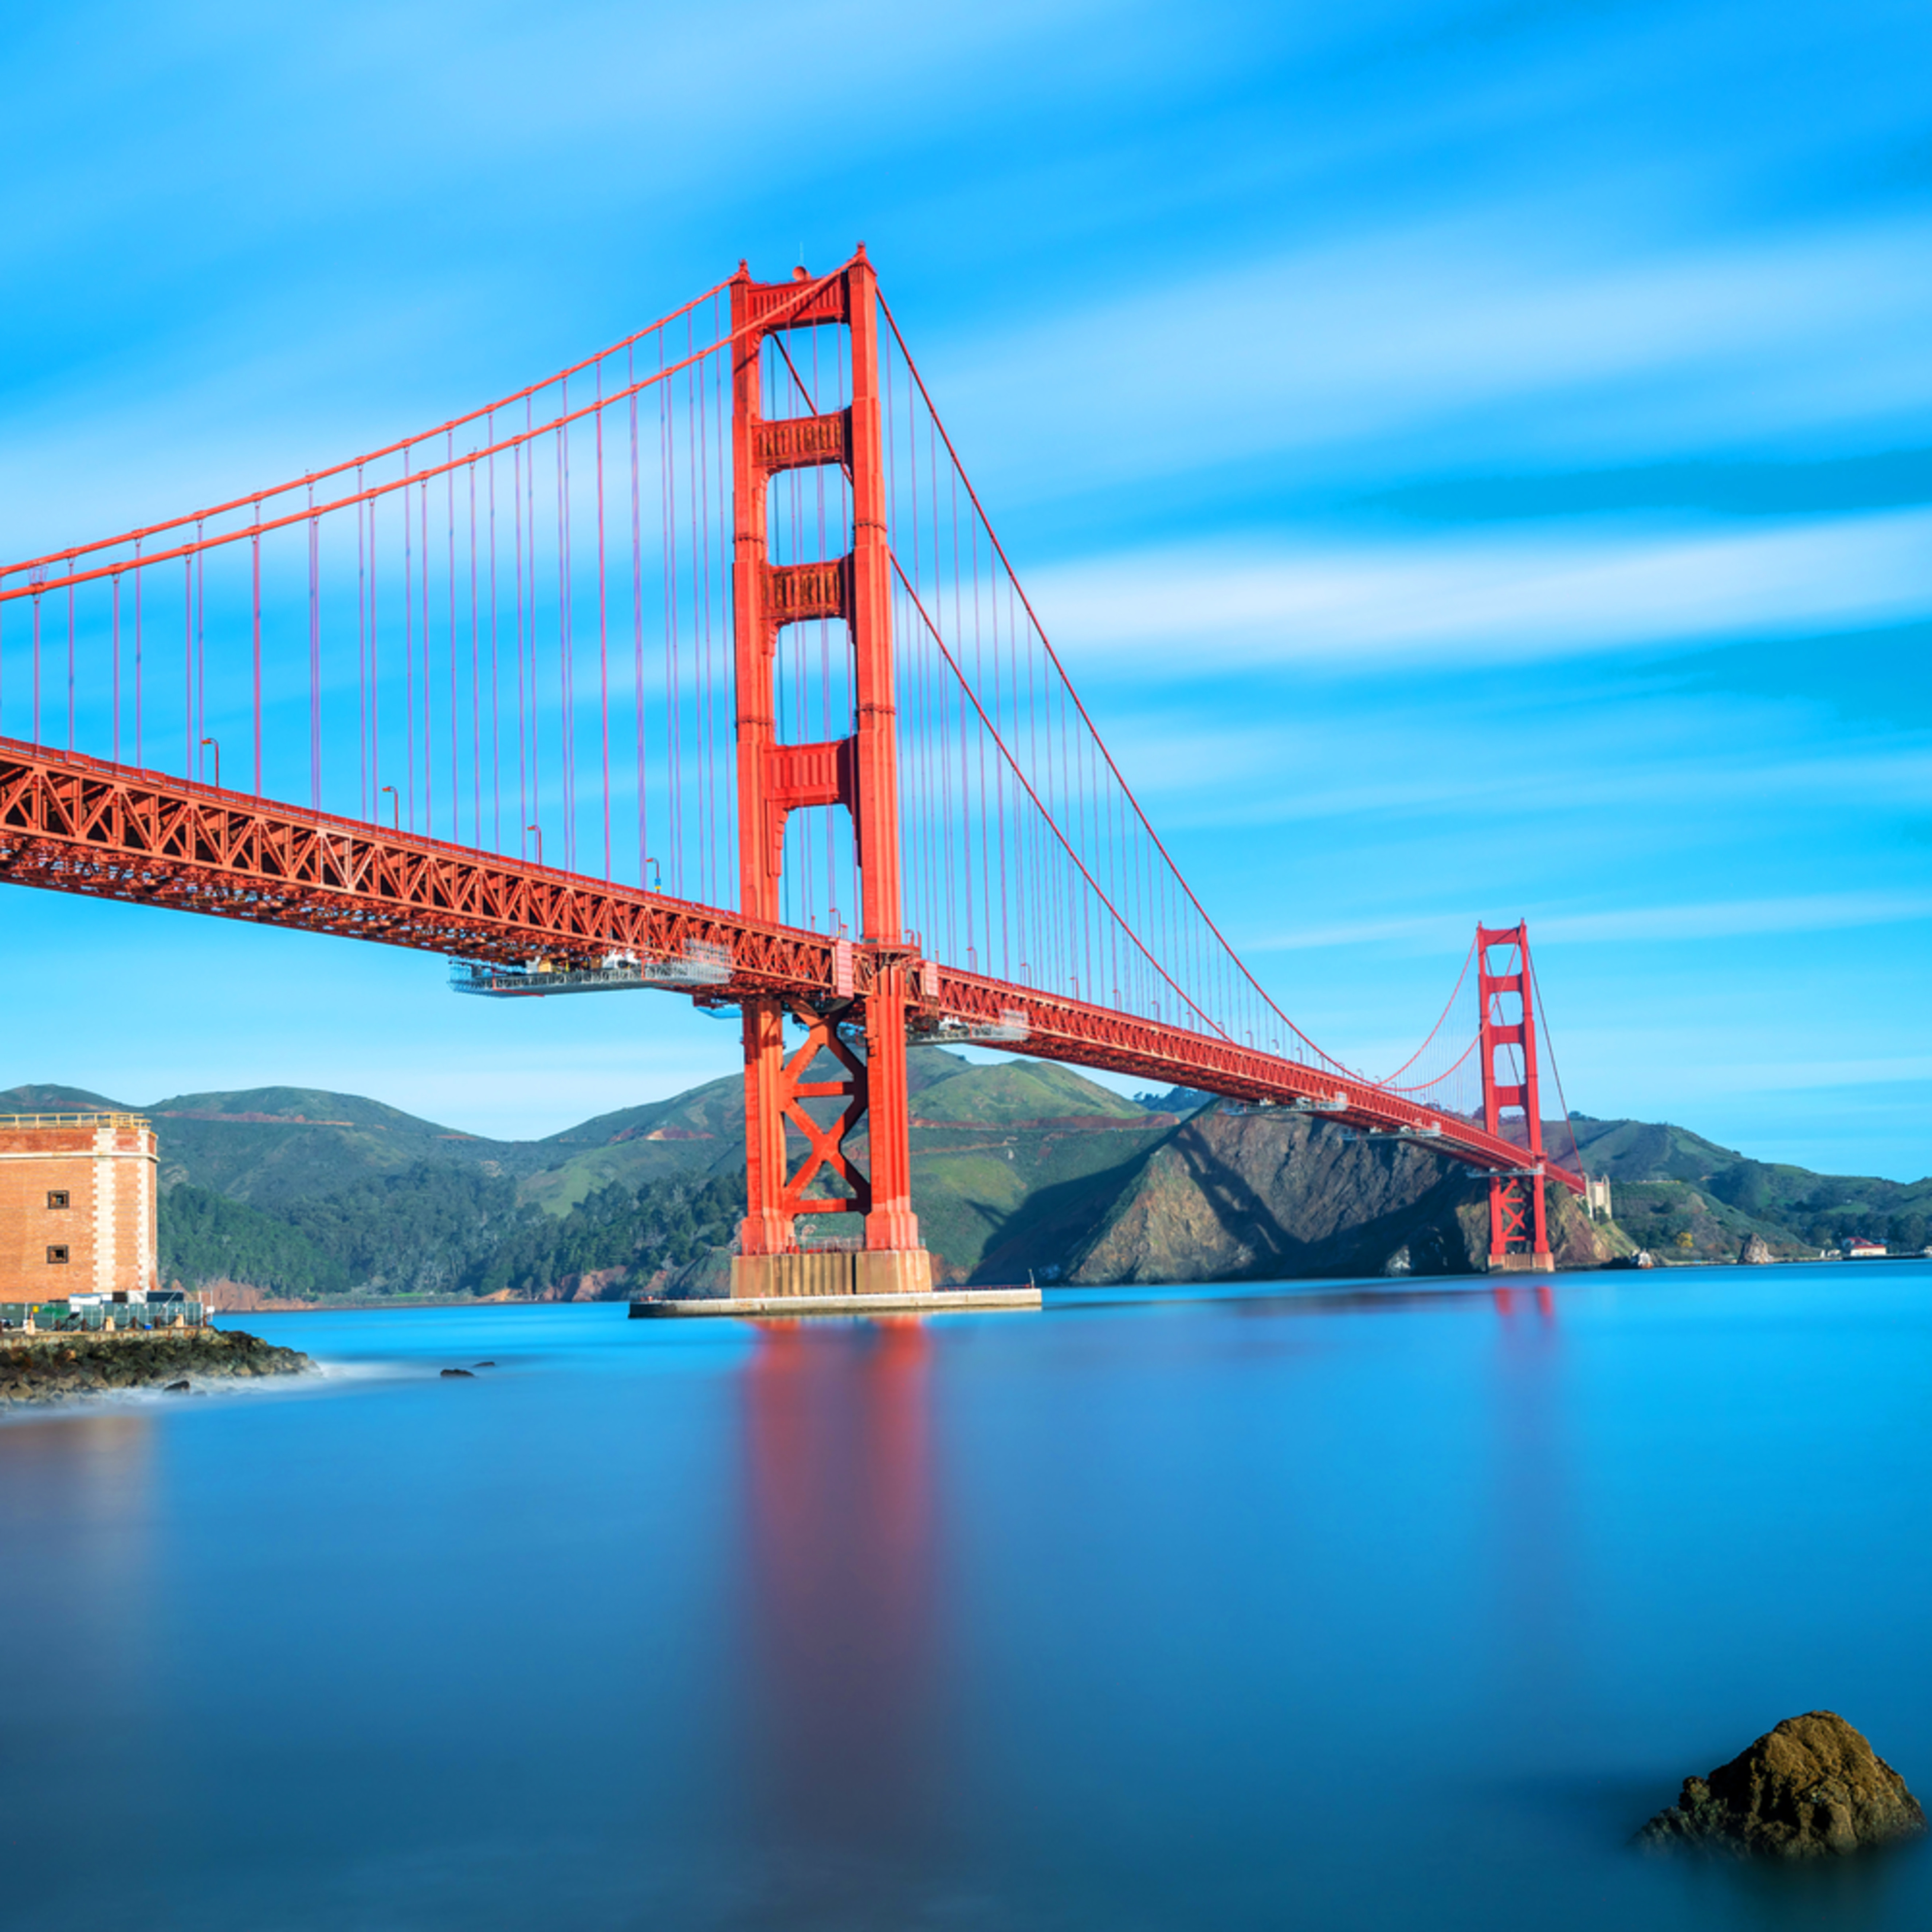 Golden gate bridge and fort point aqggh8